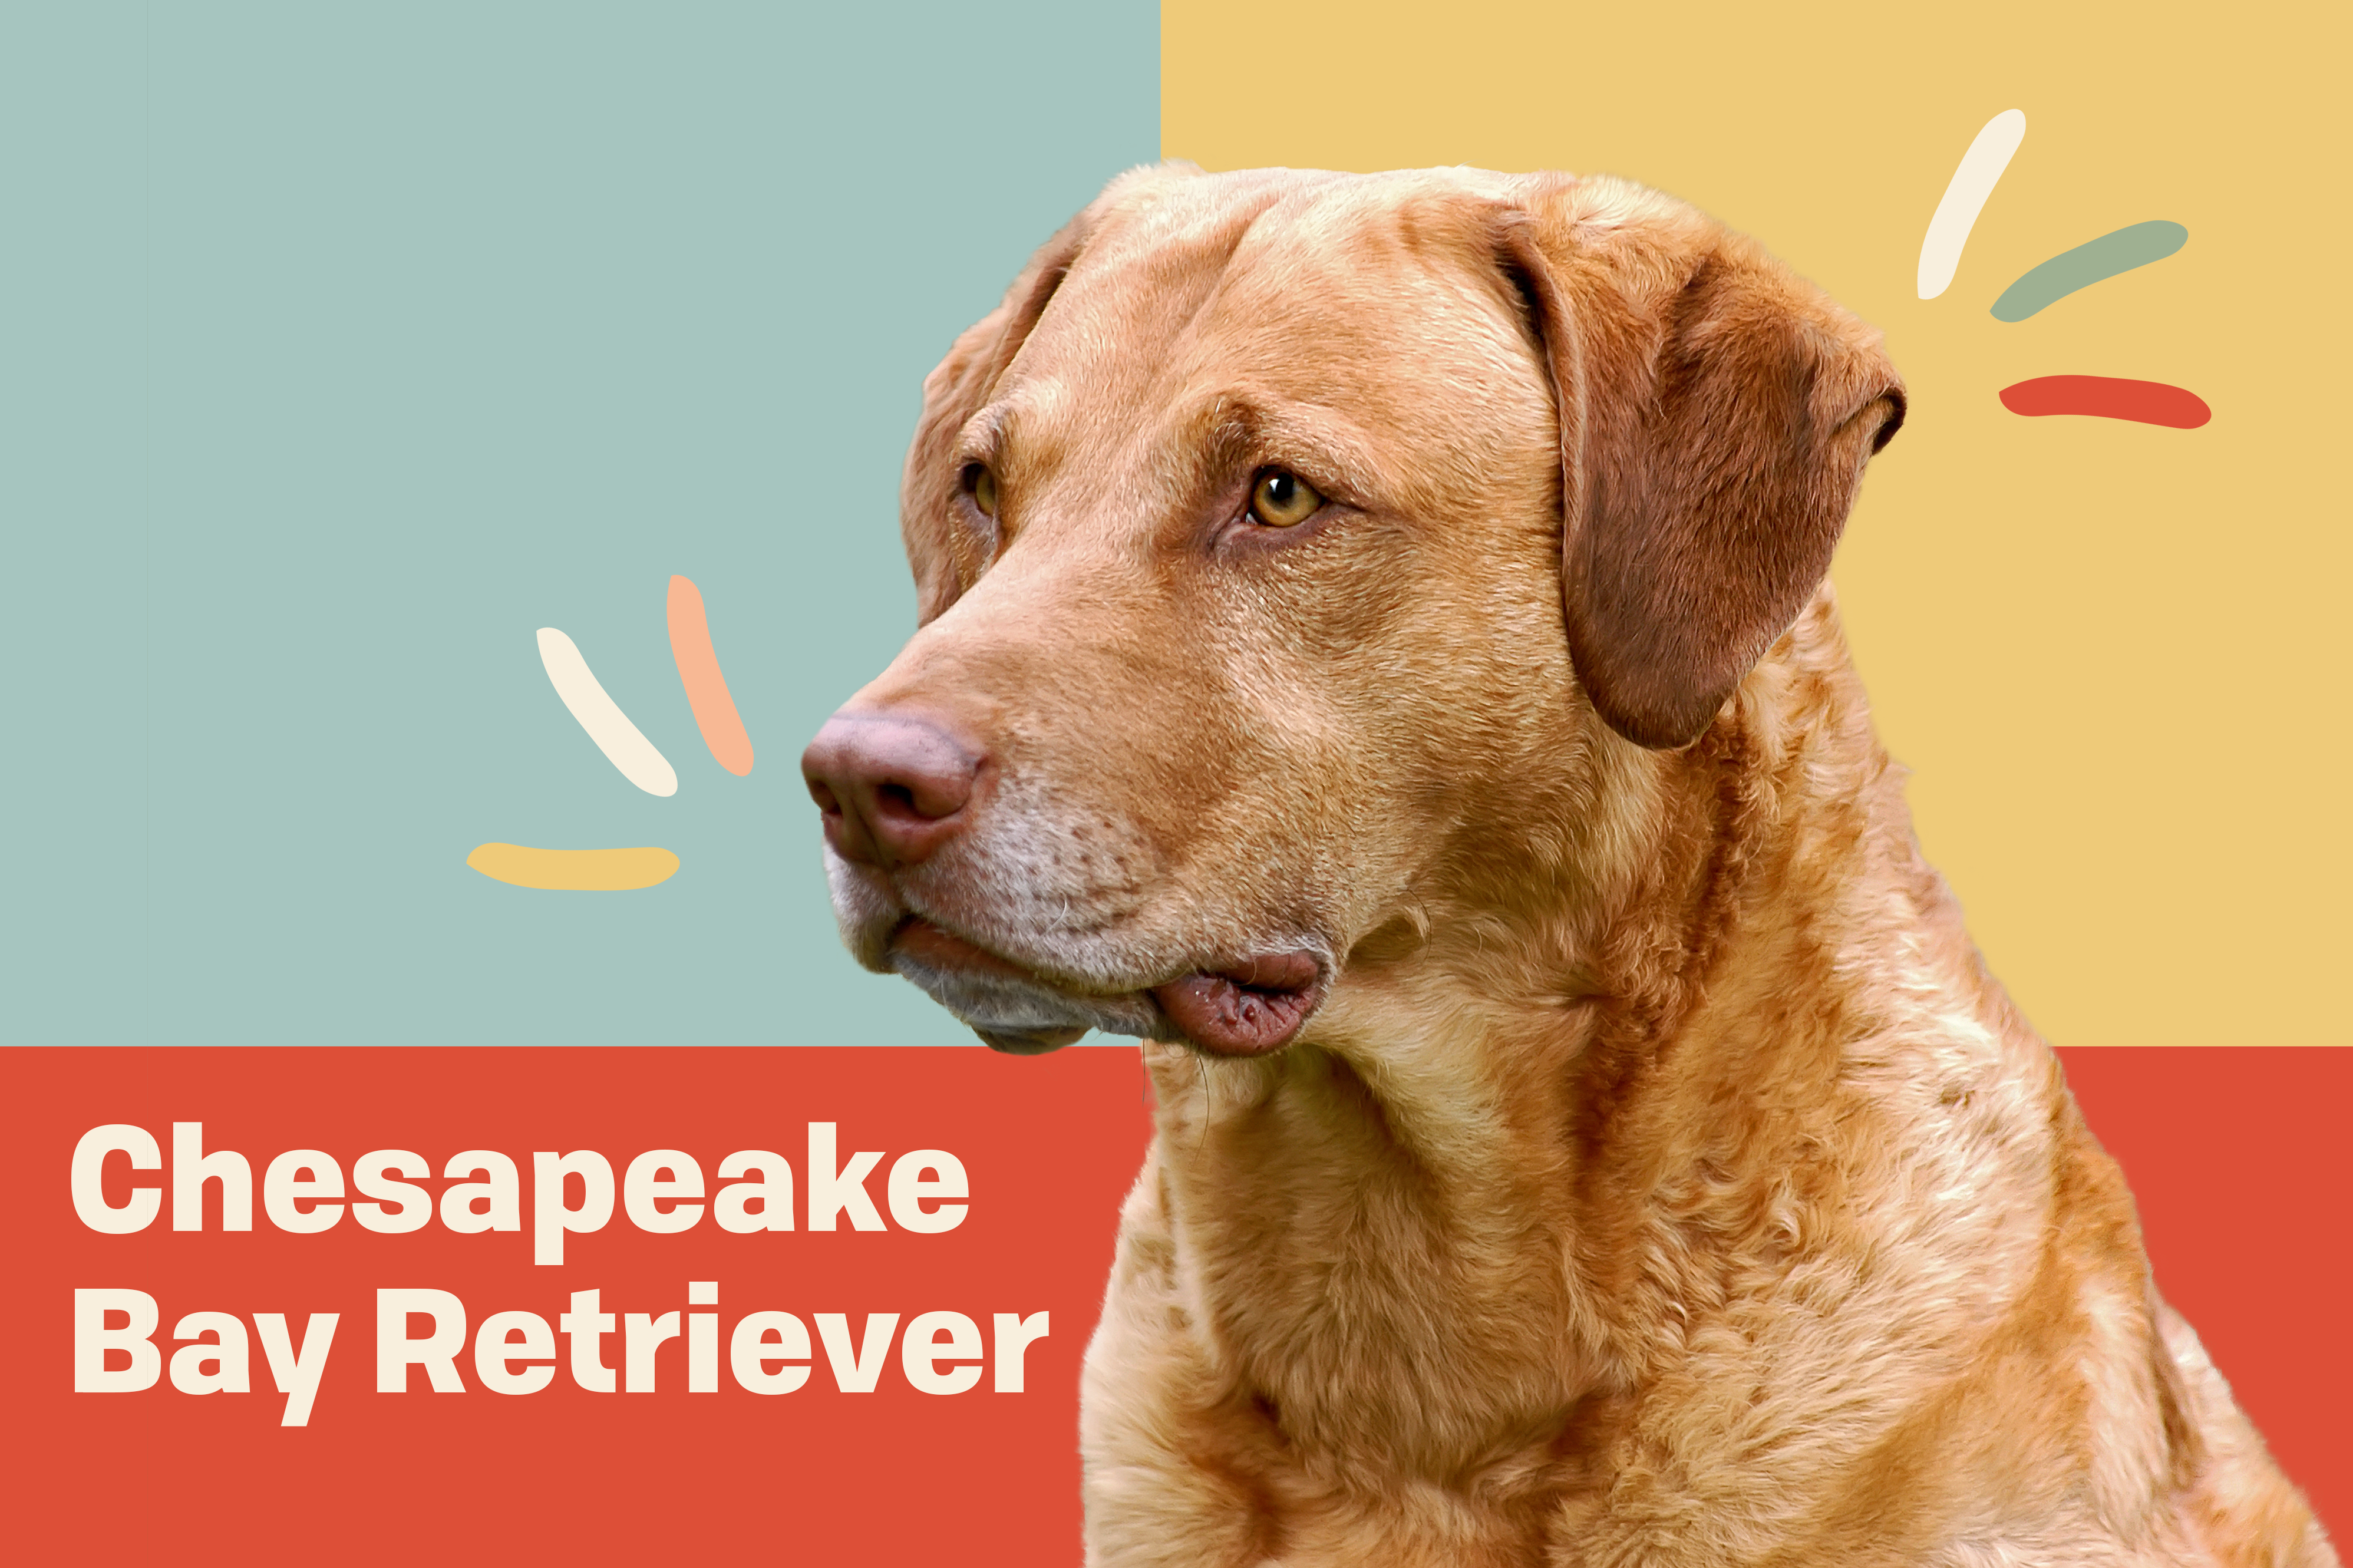 Chesapeake Bay Retriever profile picture with illustrated embellishments